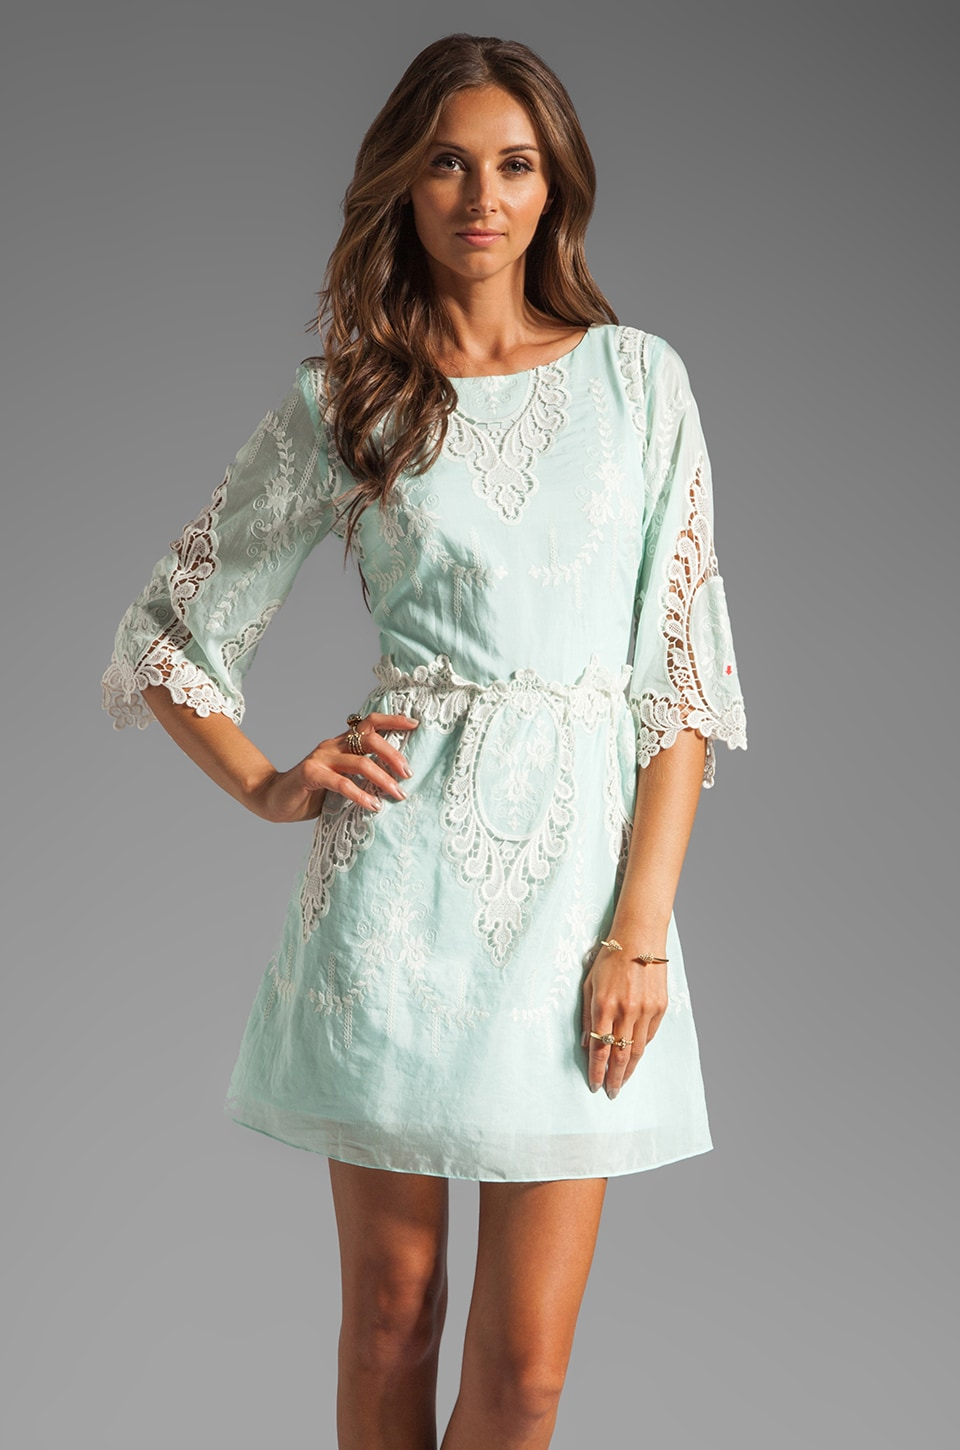 Dolce Vita Nella Dress in Mint